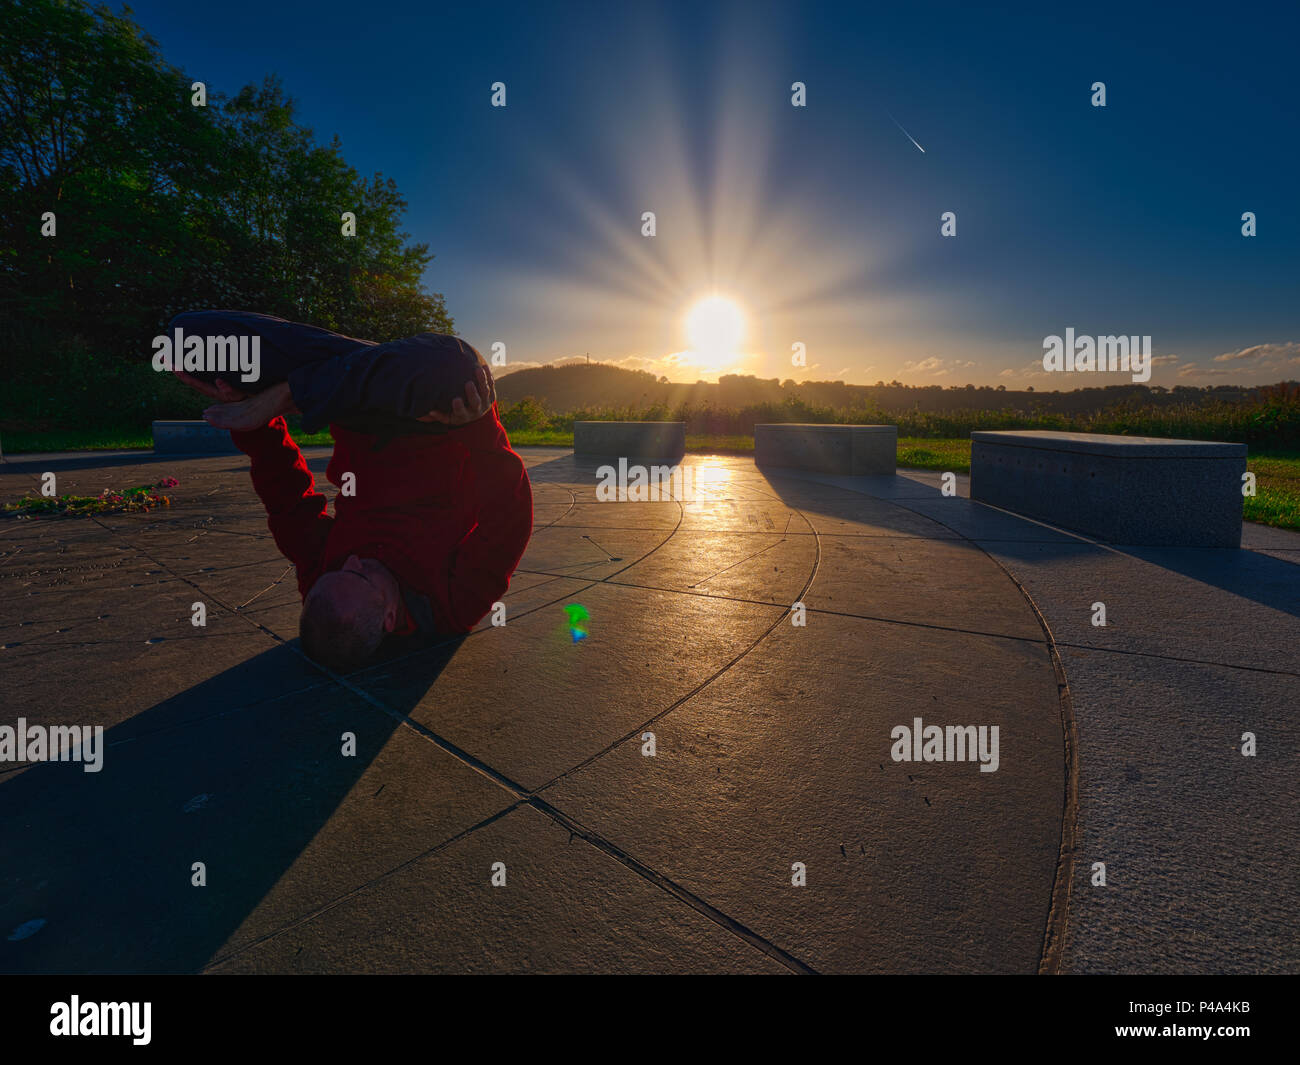 Wirksworth, Derbyshire, UK. 21st June, 2018. International World Yoga Day upside down lotus pose Urdhva Padmasana saluting the sun rising on the summer estival solstice at the star disc above Wirksworth in the Derbyshire Dales Credit: Doug Blane/Alamy Live News - Stock Image